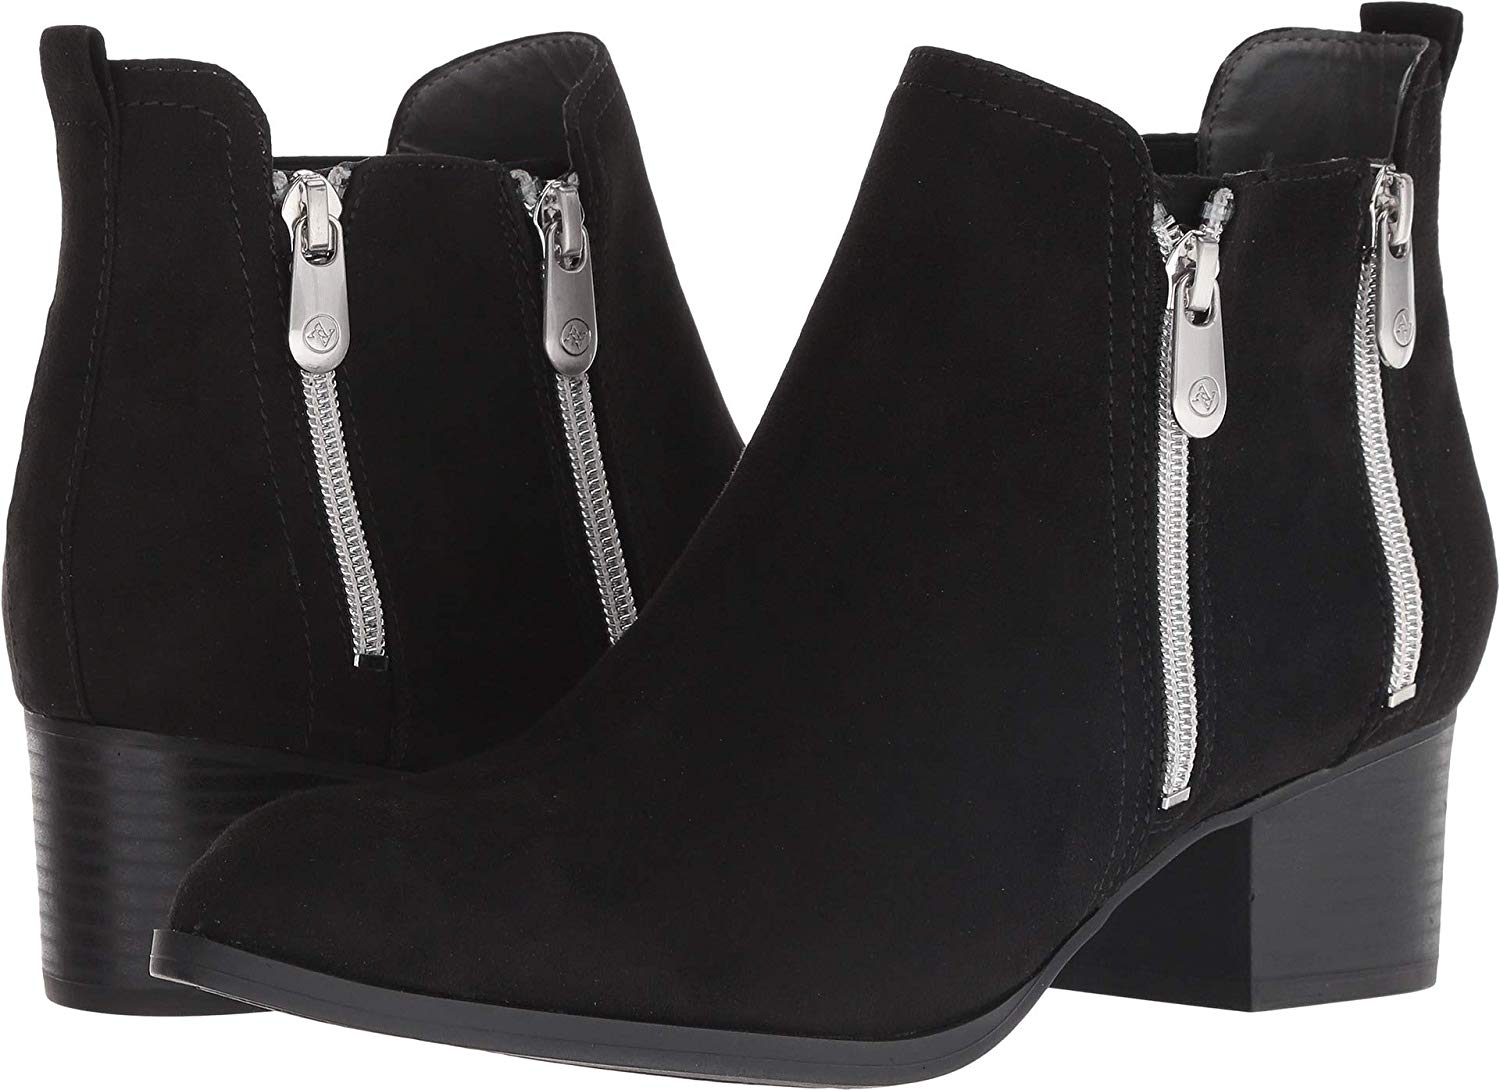 Adrienne Vittadini Womens Ravi Ankle Boots Leather Pointed Toe Ankle Fashion Boots US